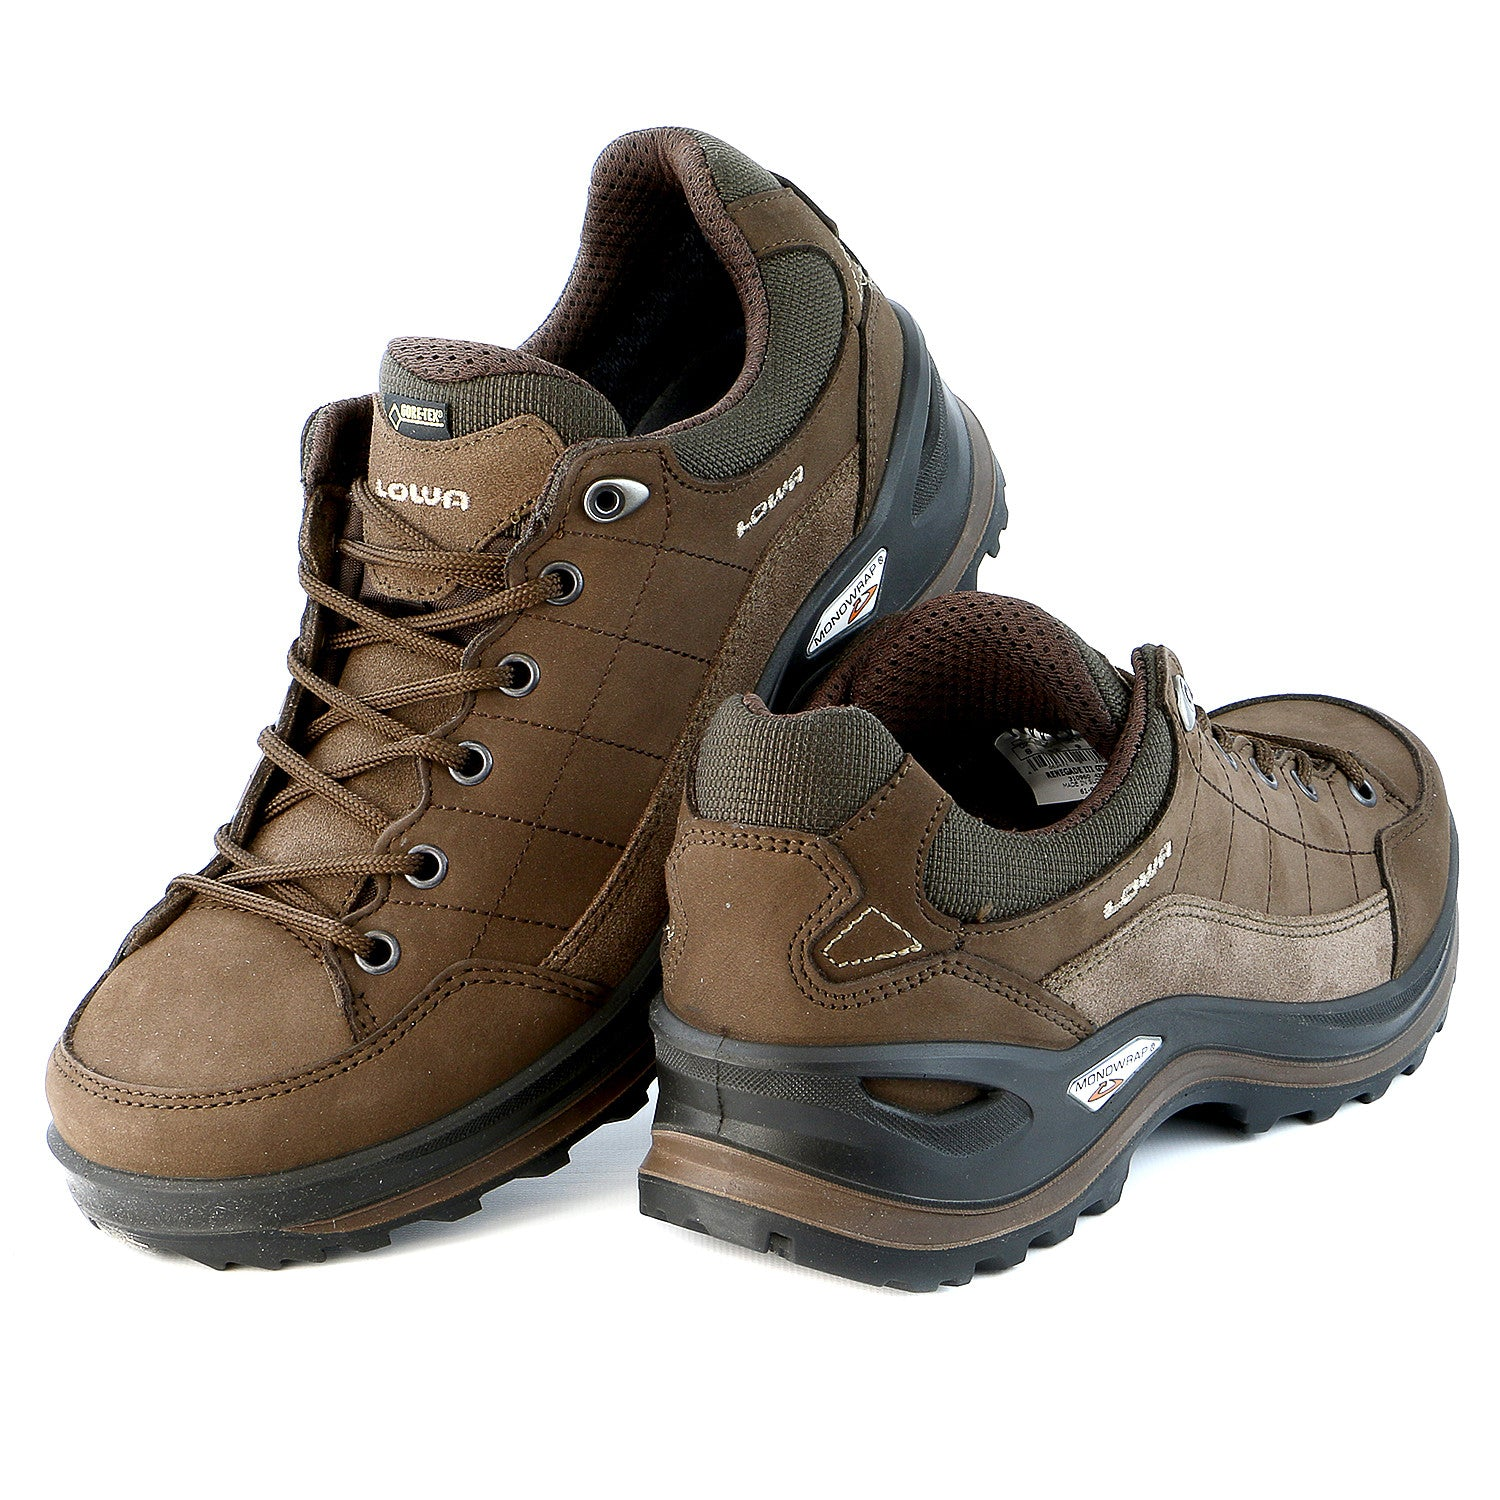 8c5be75bd08 Lowa Renegade III GTX LO Hiking Shoe - Men's